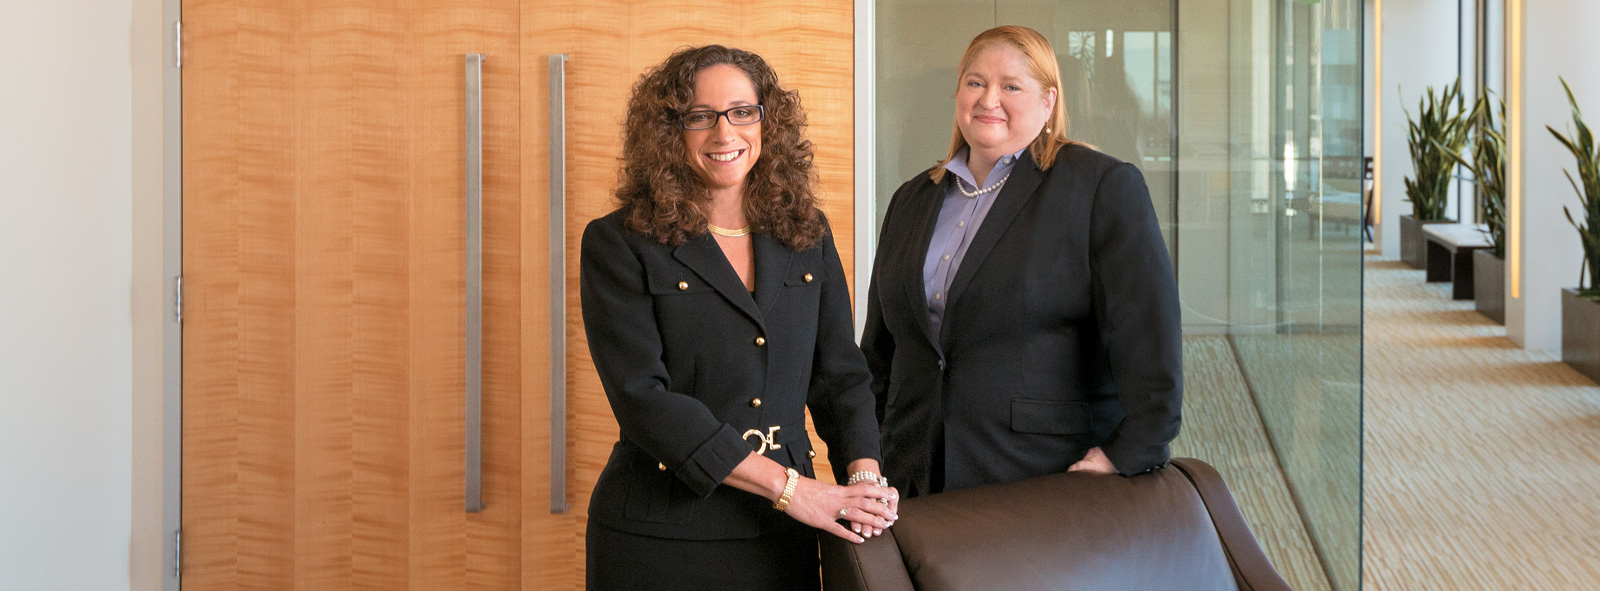 Image of First Republic Small Businesses client(s) Kaye Moser Hierbaum LLP